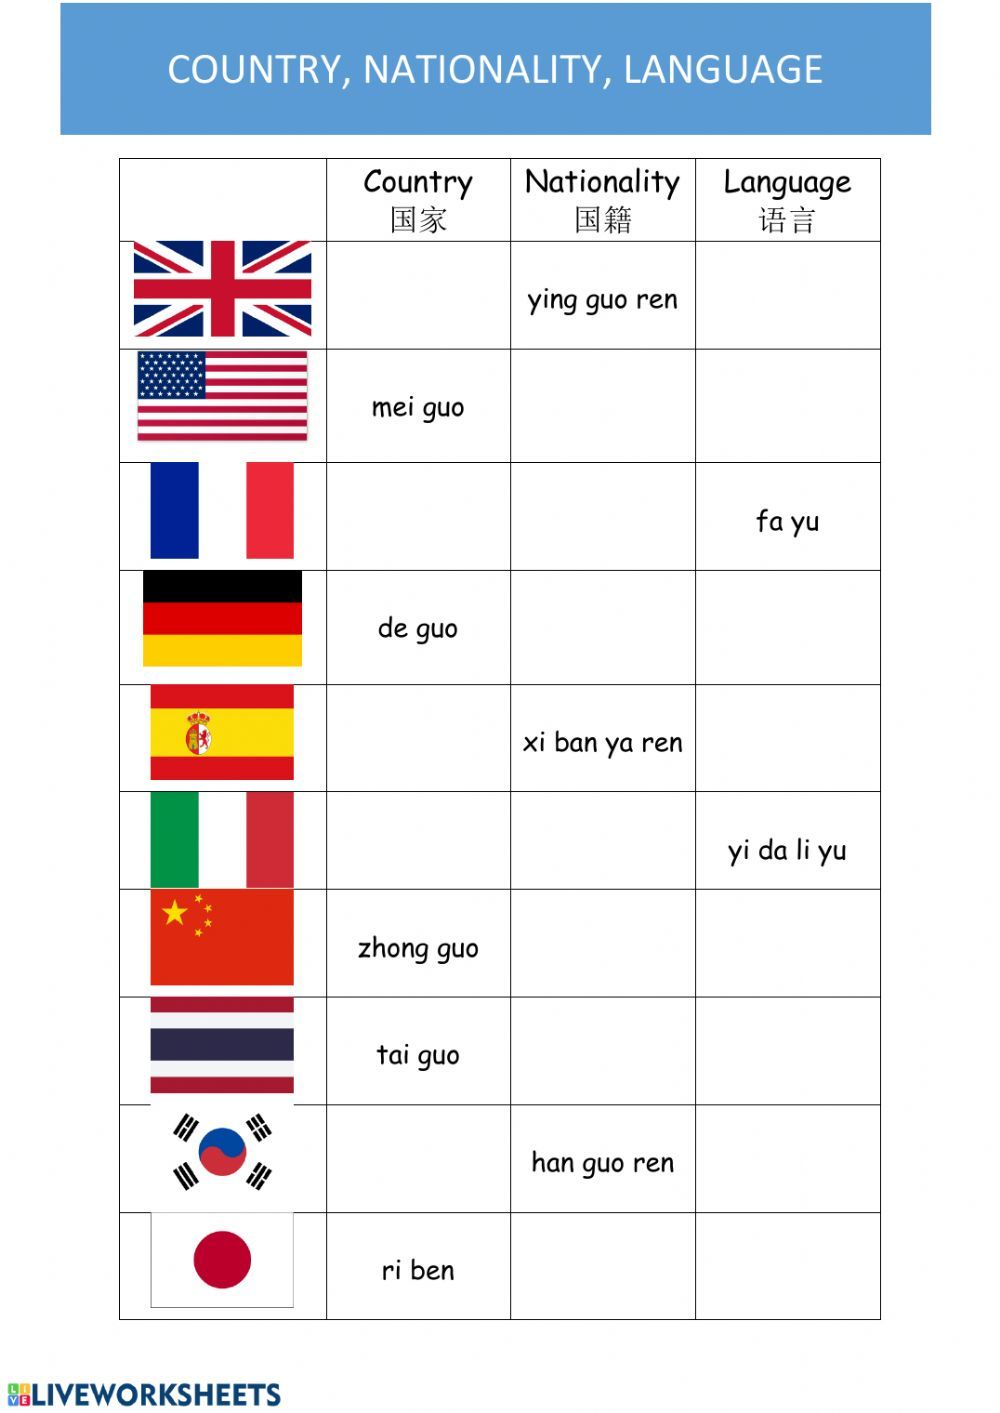 Languages Countries Interactive And Downloadable Worksheet You Can Do The Exercises Online Or Download Th Chinese Lessons Chinese Phrases Language Worksheets [ 1413 x 1000 Pixel ]